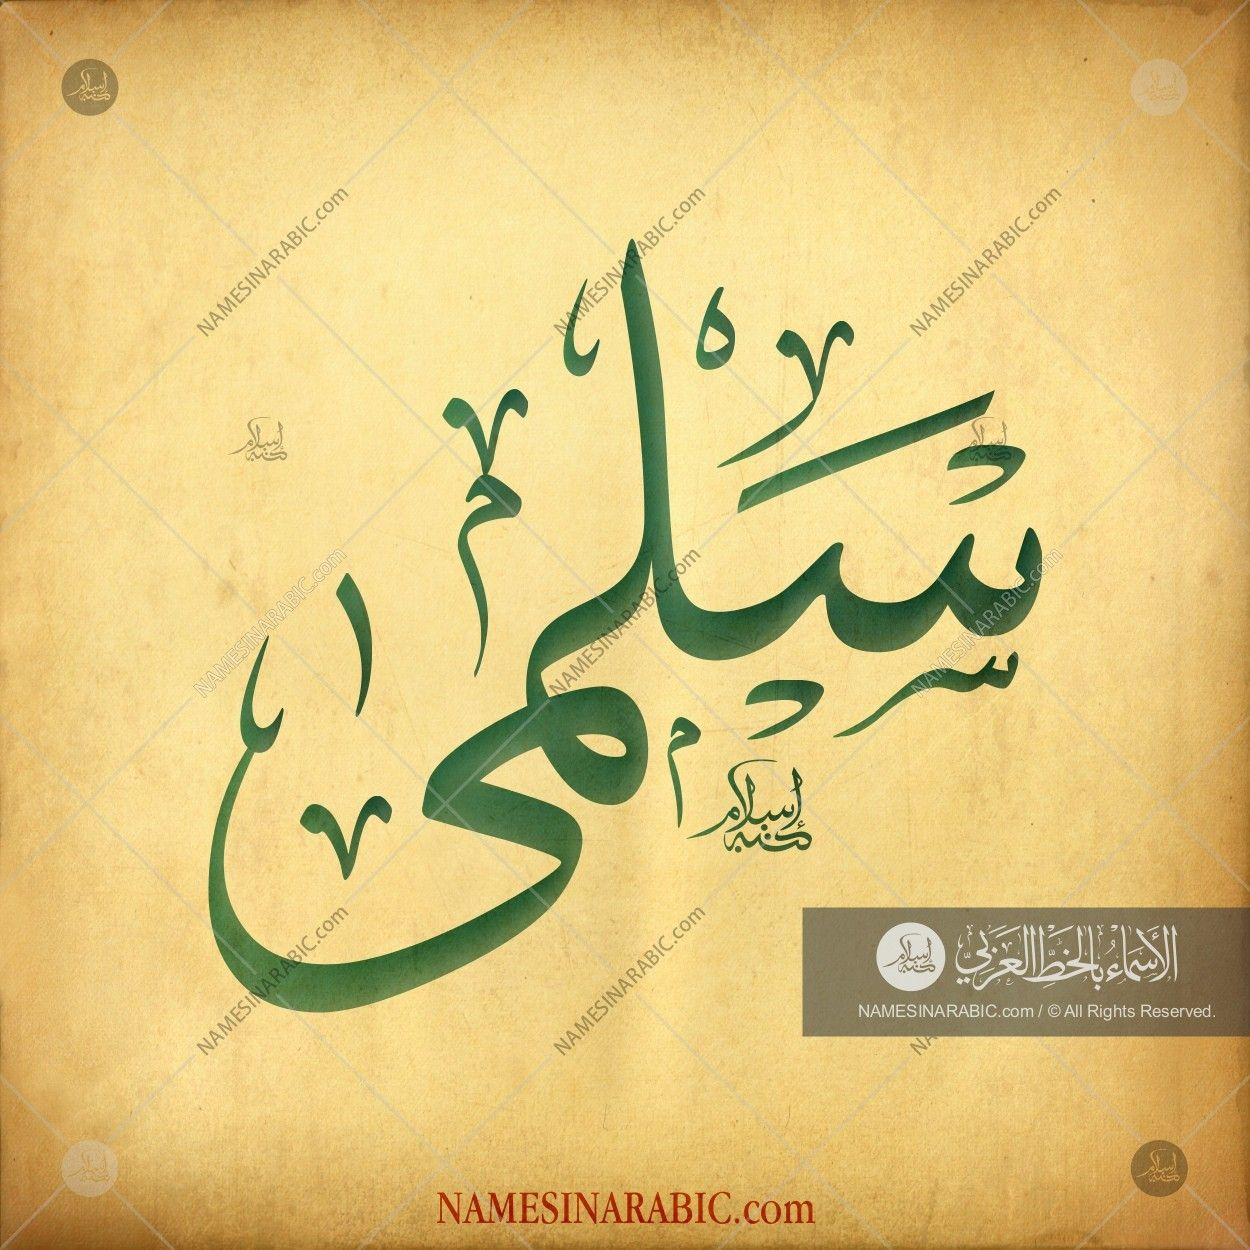 Salma سلمى Names In Arabic Calligraphy Name 3091 Calligraphy Name Calligraphy Arabic Calligraphy Design